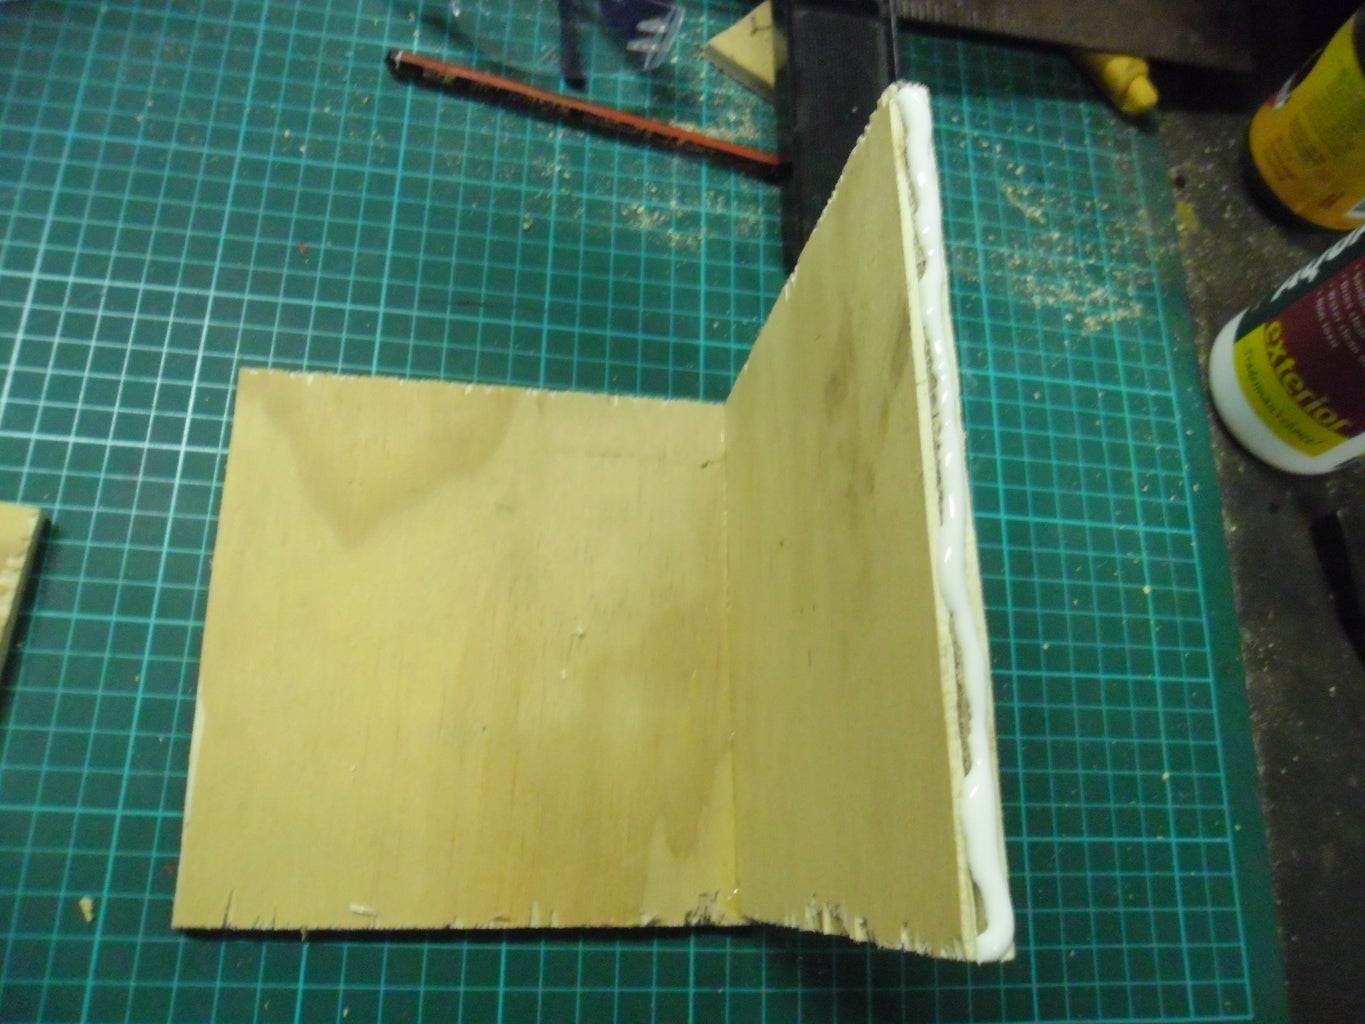 Box Assembly - Step One